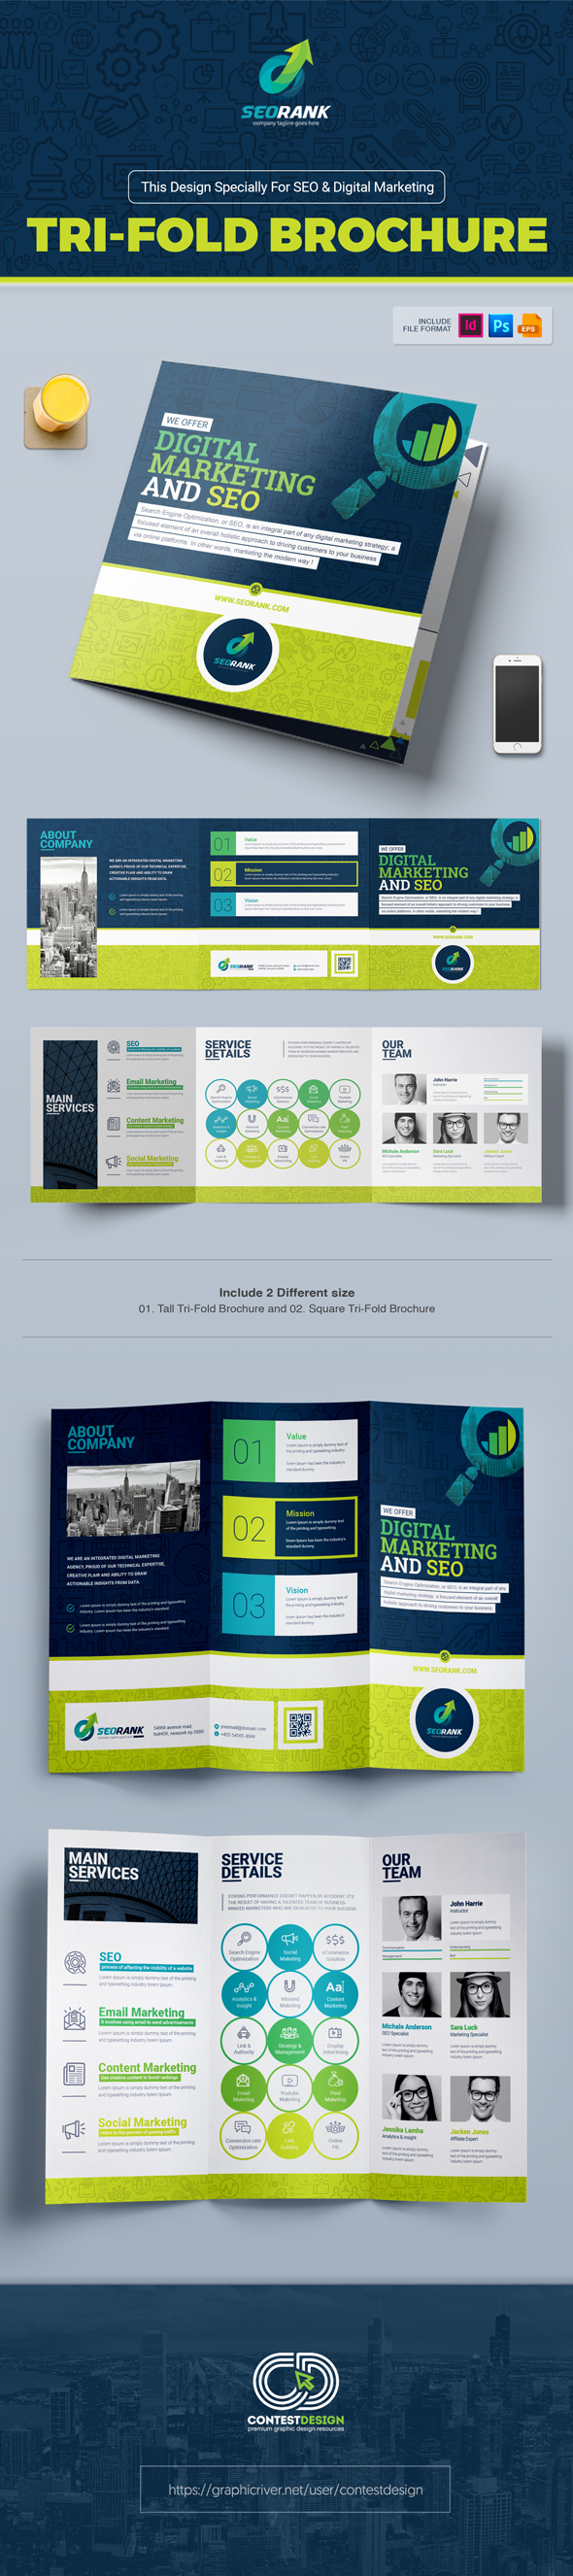 tri fold brochure template for seo digital marketing on behance